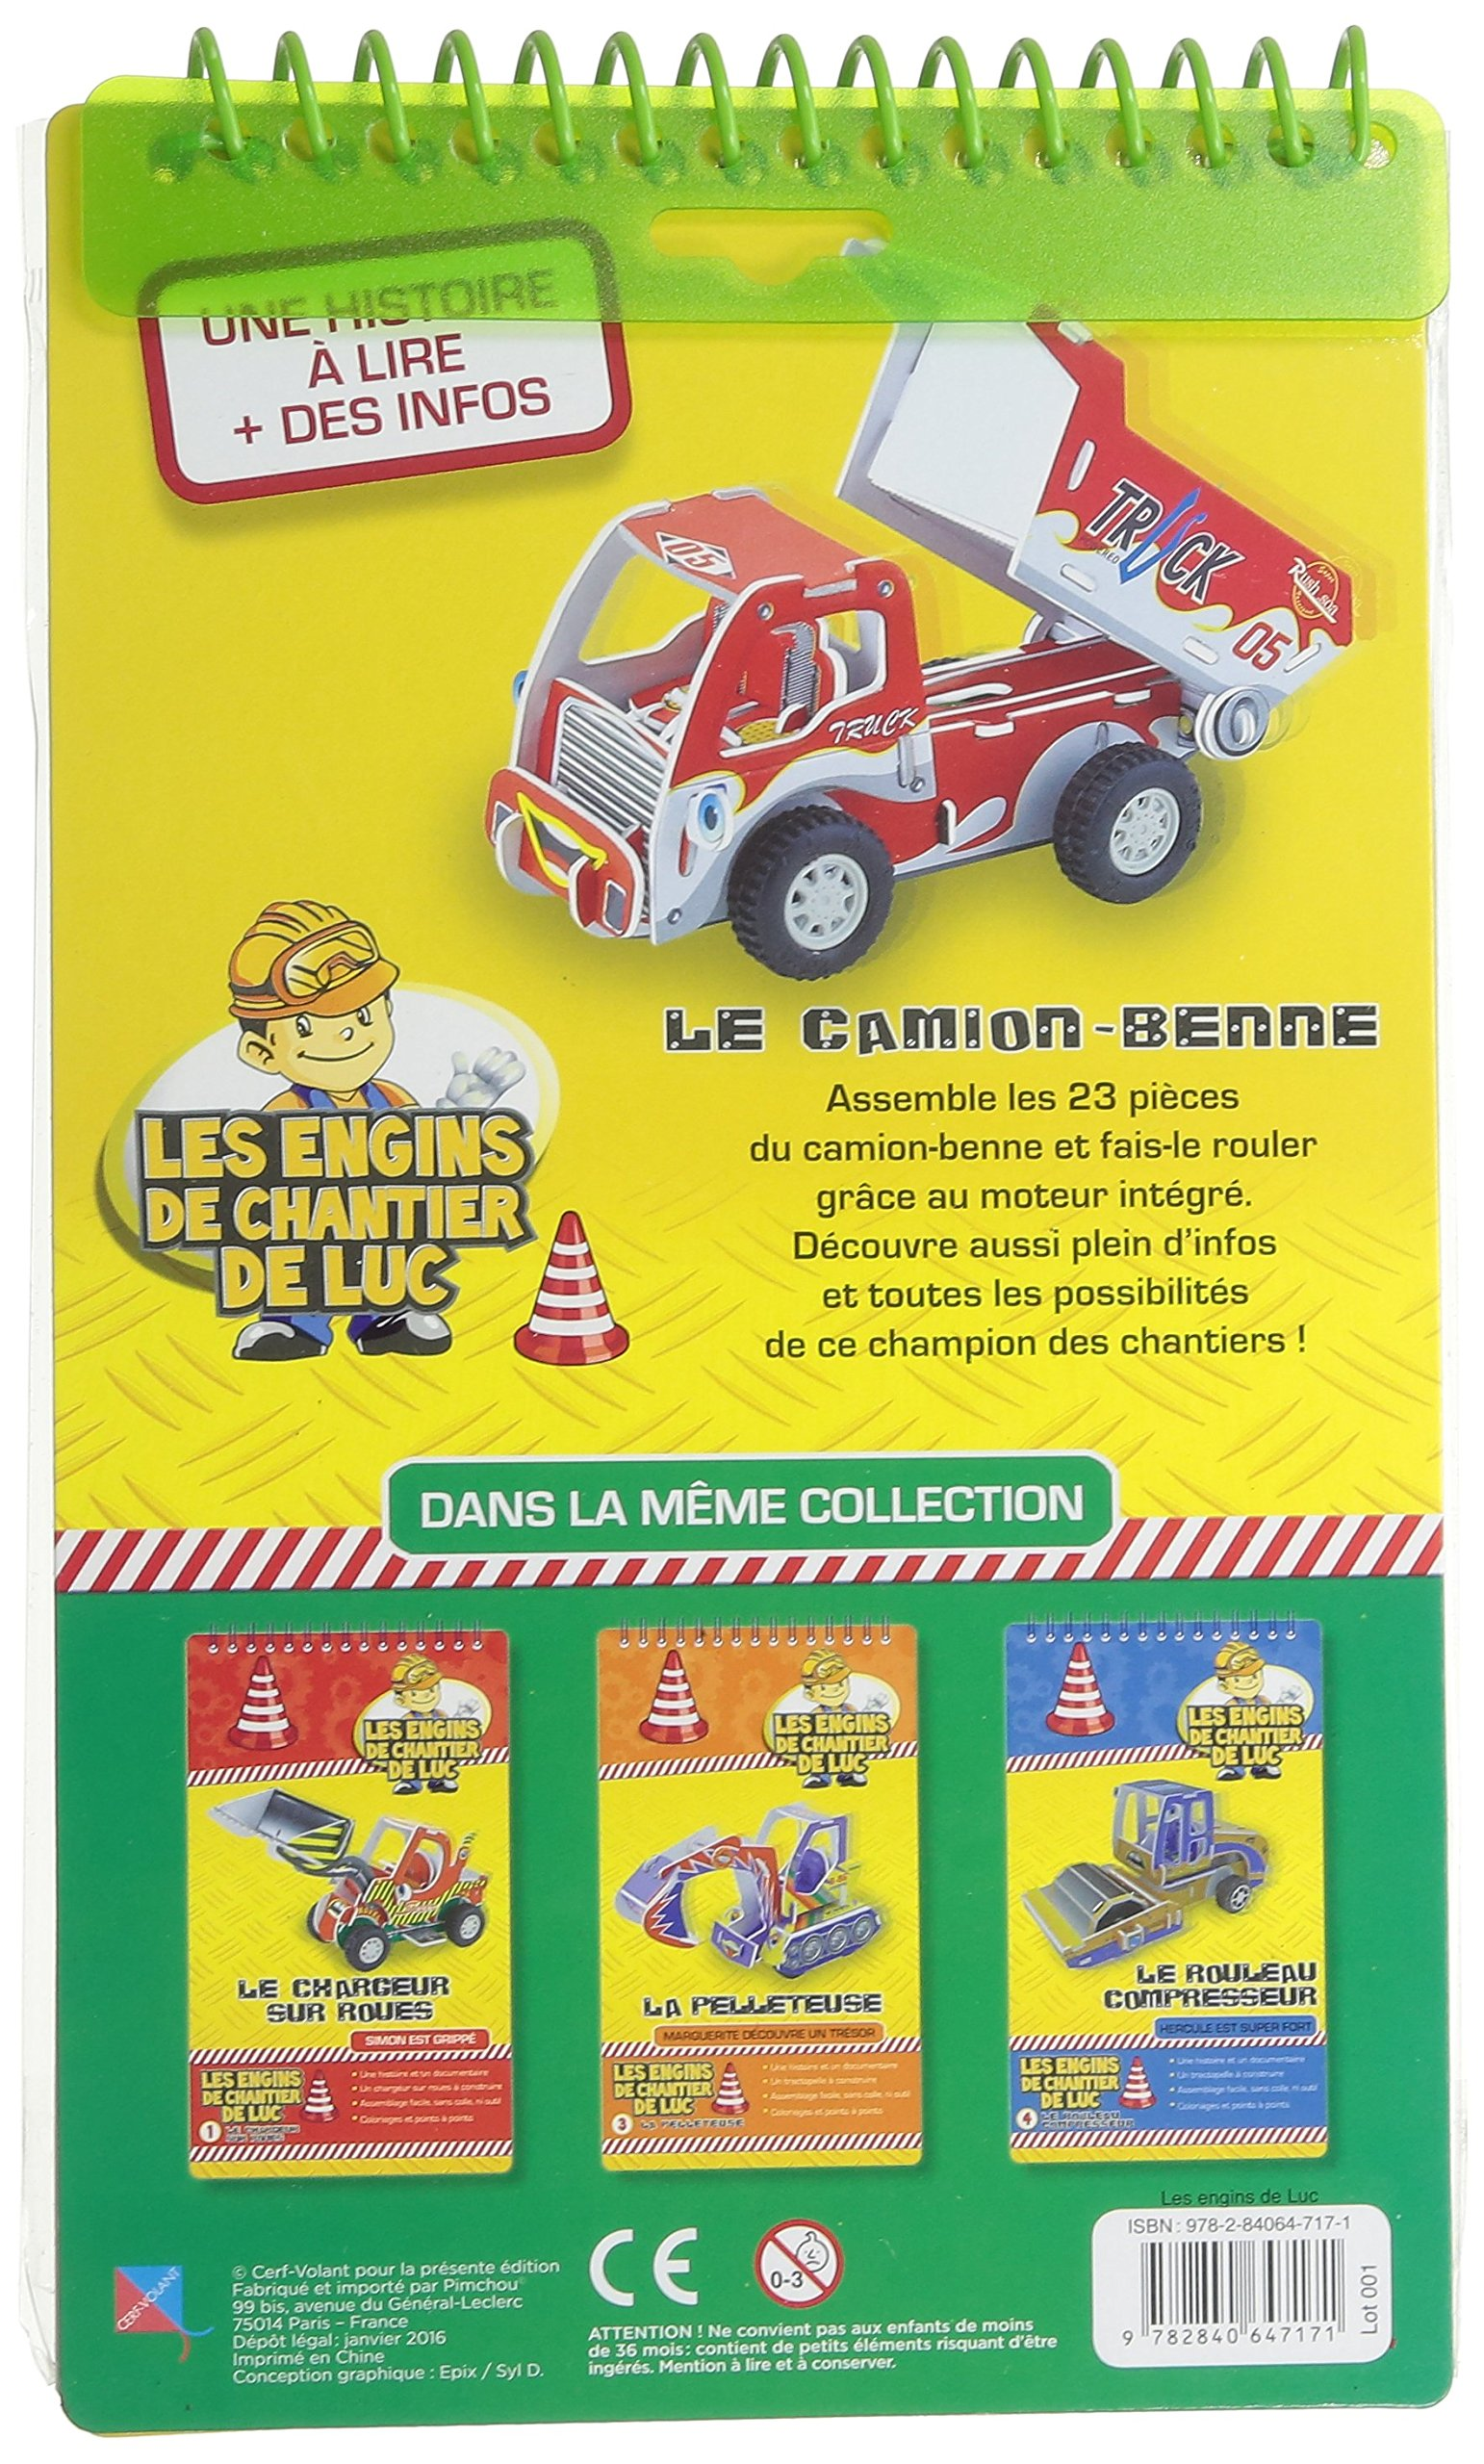 eugène camion benne 9782840647171 amazon com books